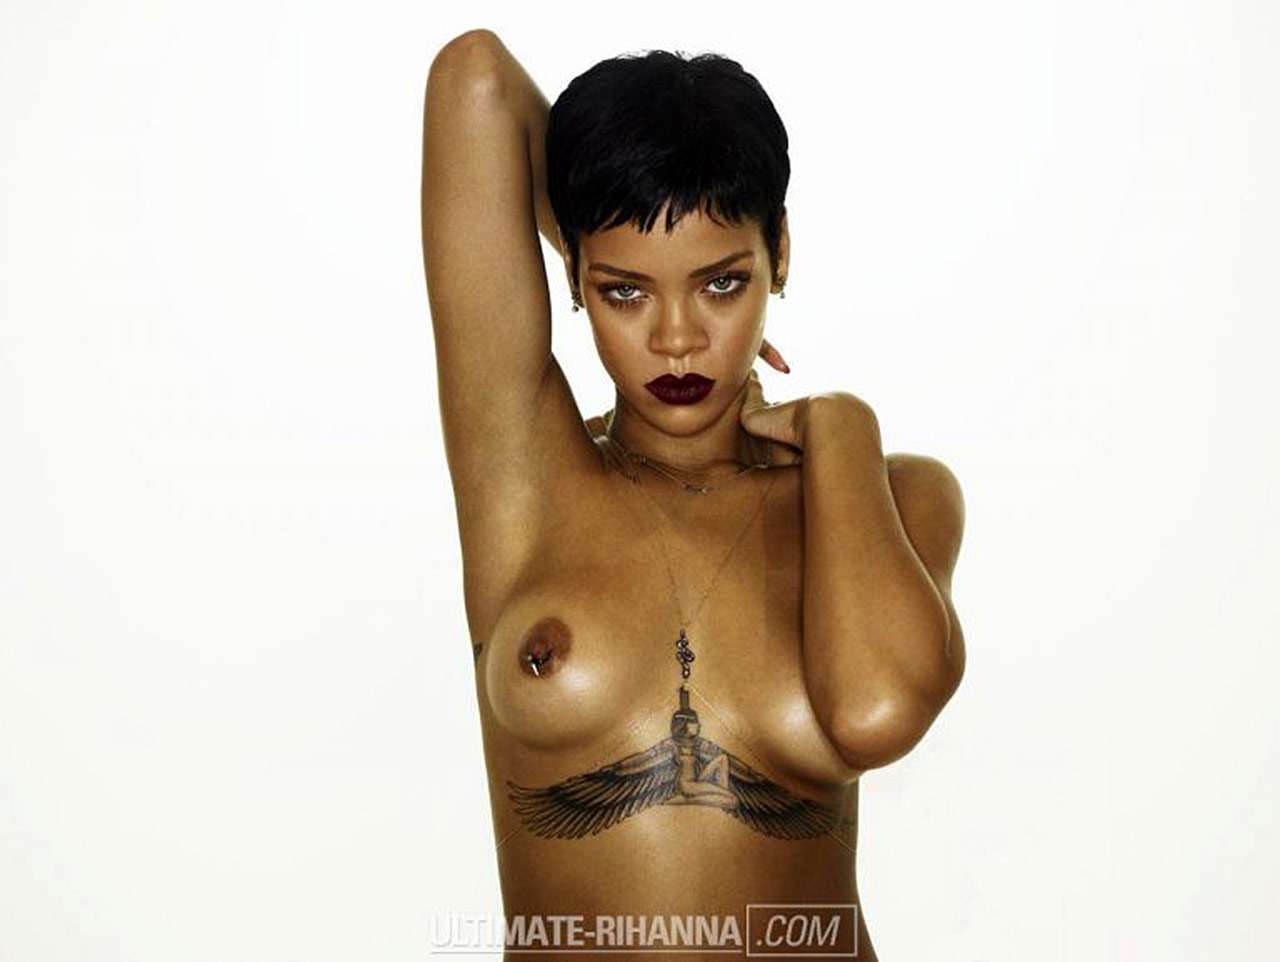 rihanna-naked-cock-in-her-arse